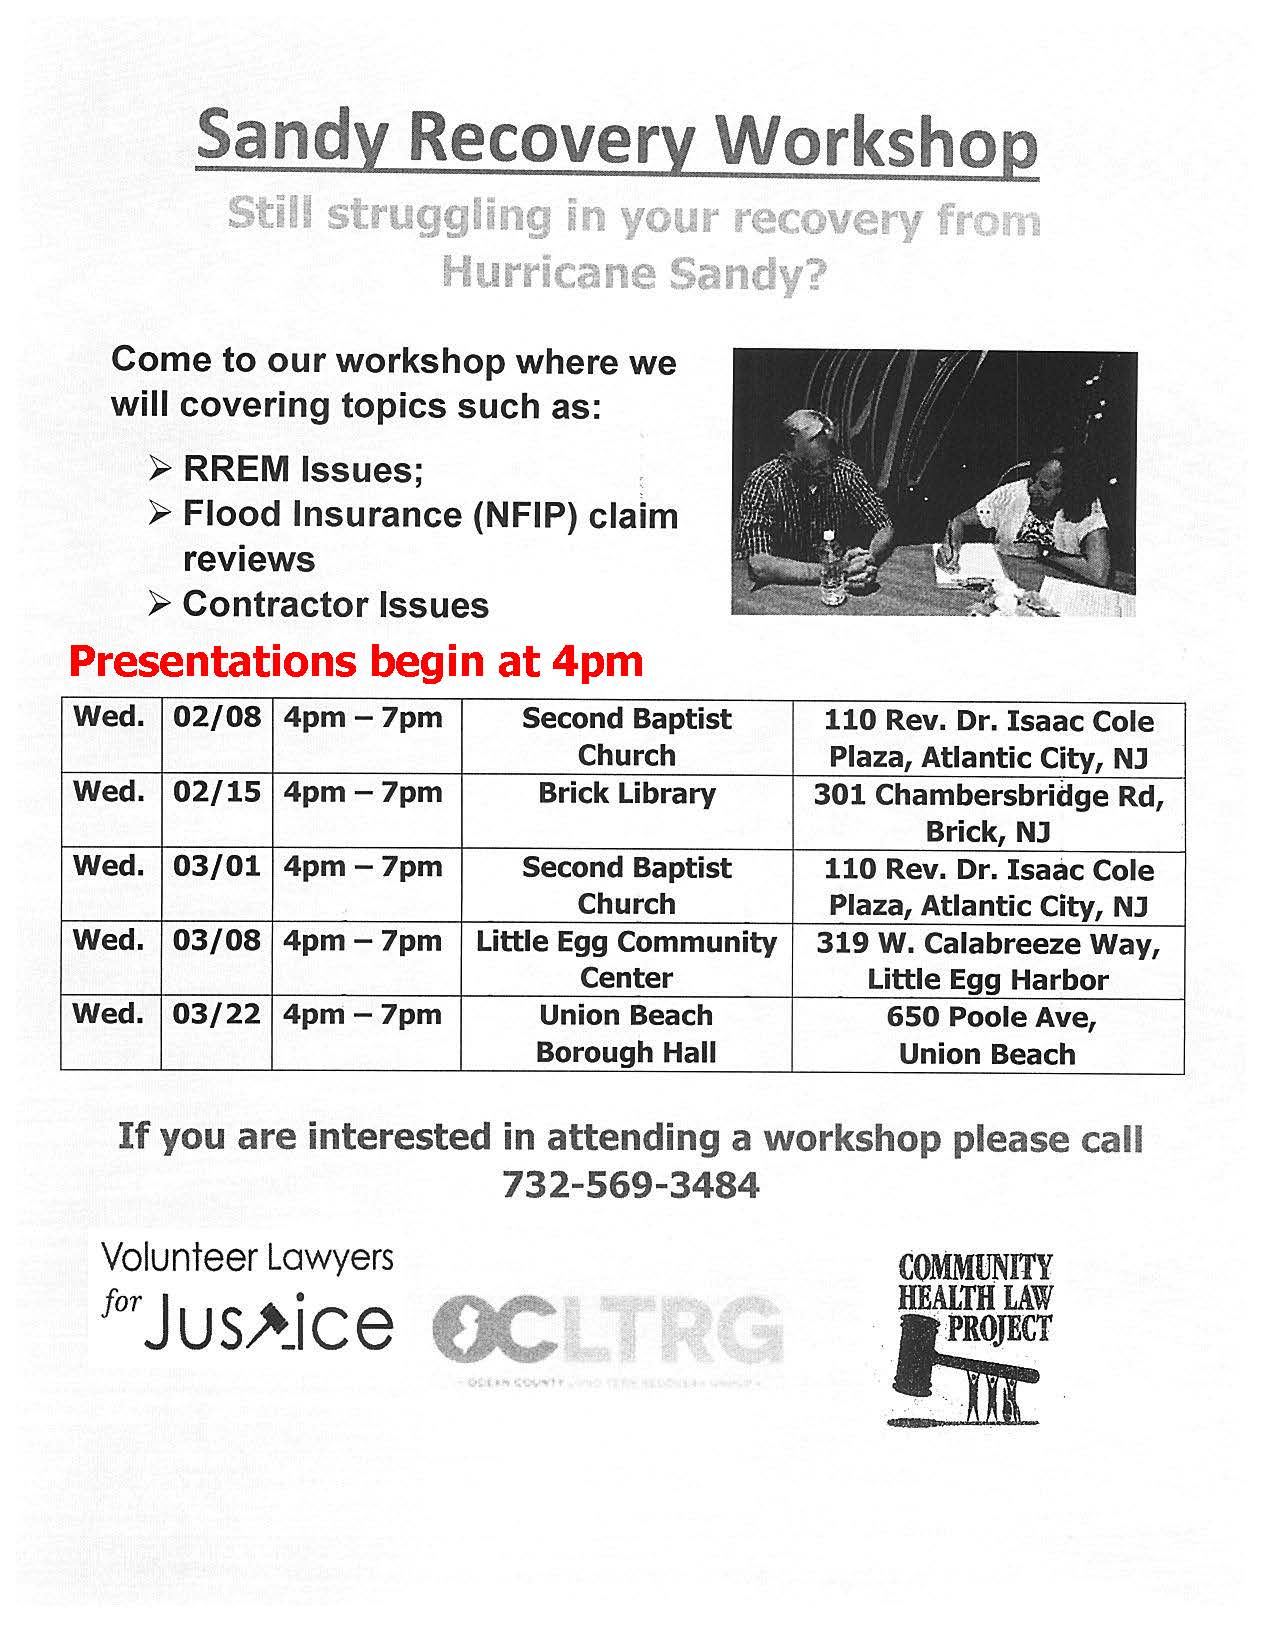 Sandy Recovery Workshops Feb_March.jpg